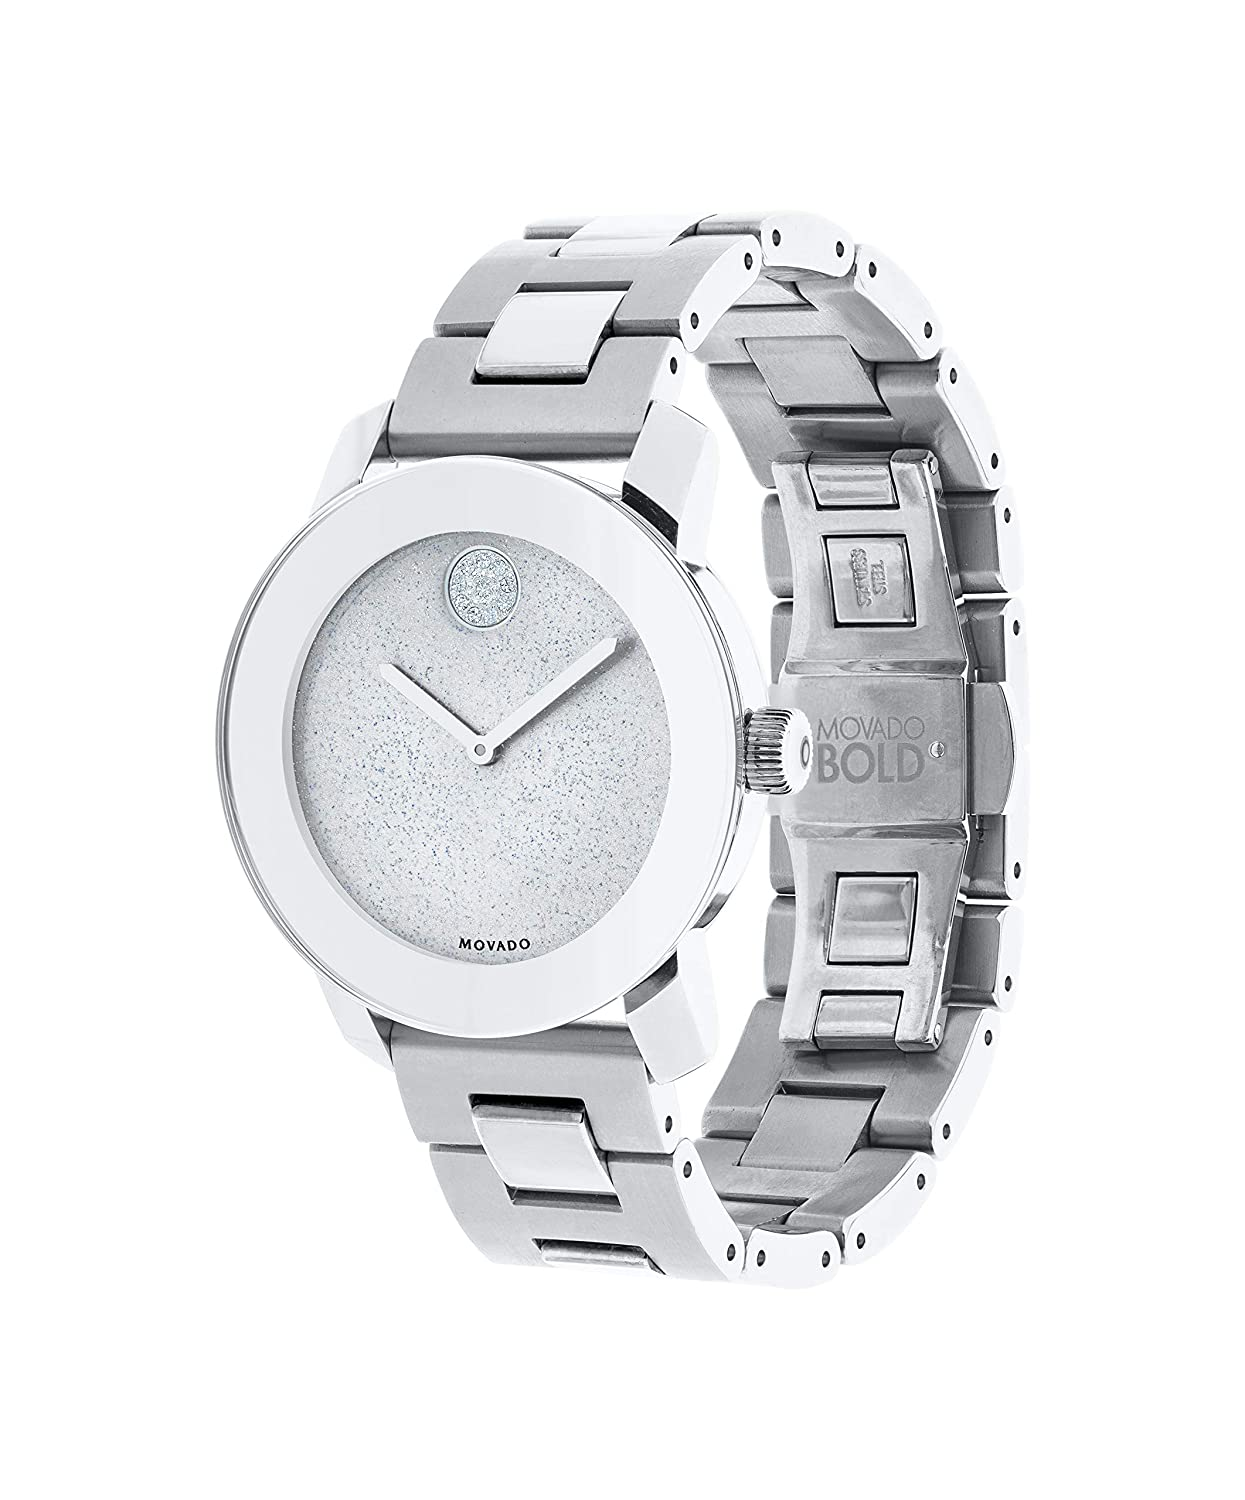 Movado Women s BOLD Iconic Metal Stainless Steel Watch with Flat Dot Glitter Dial, Silver 3600334